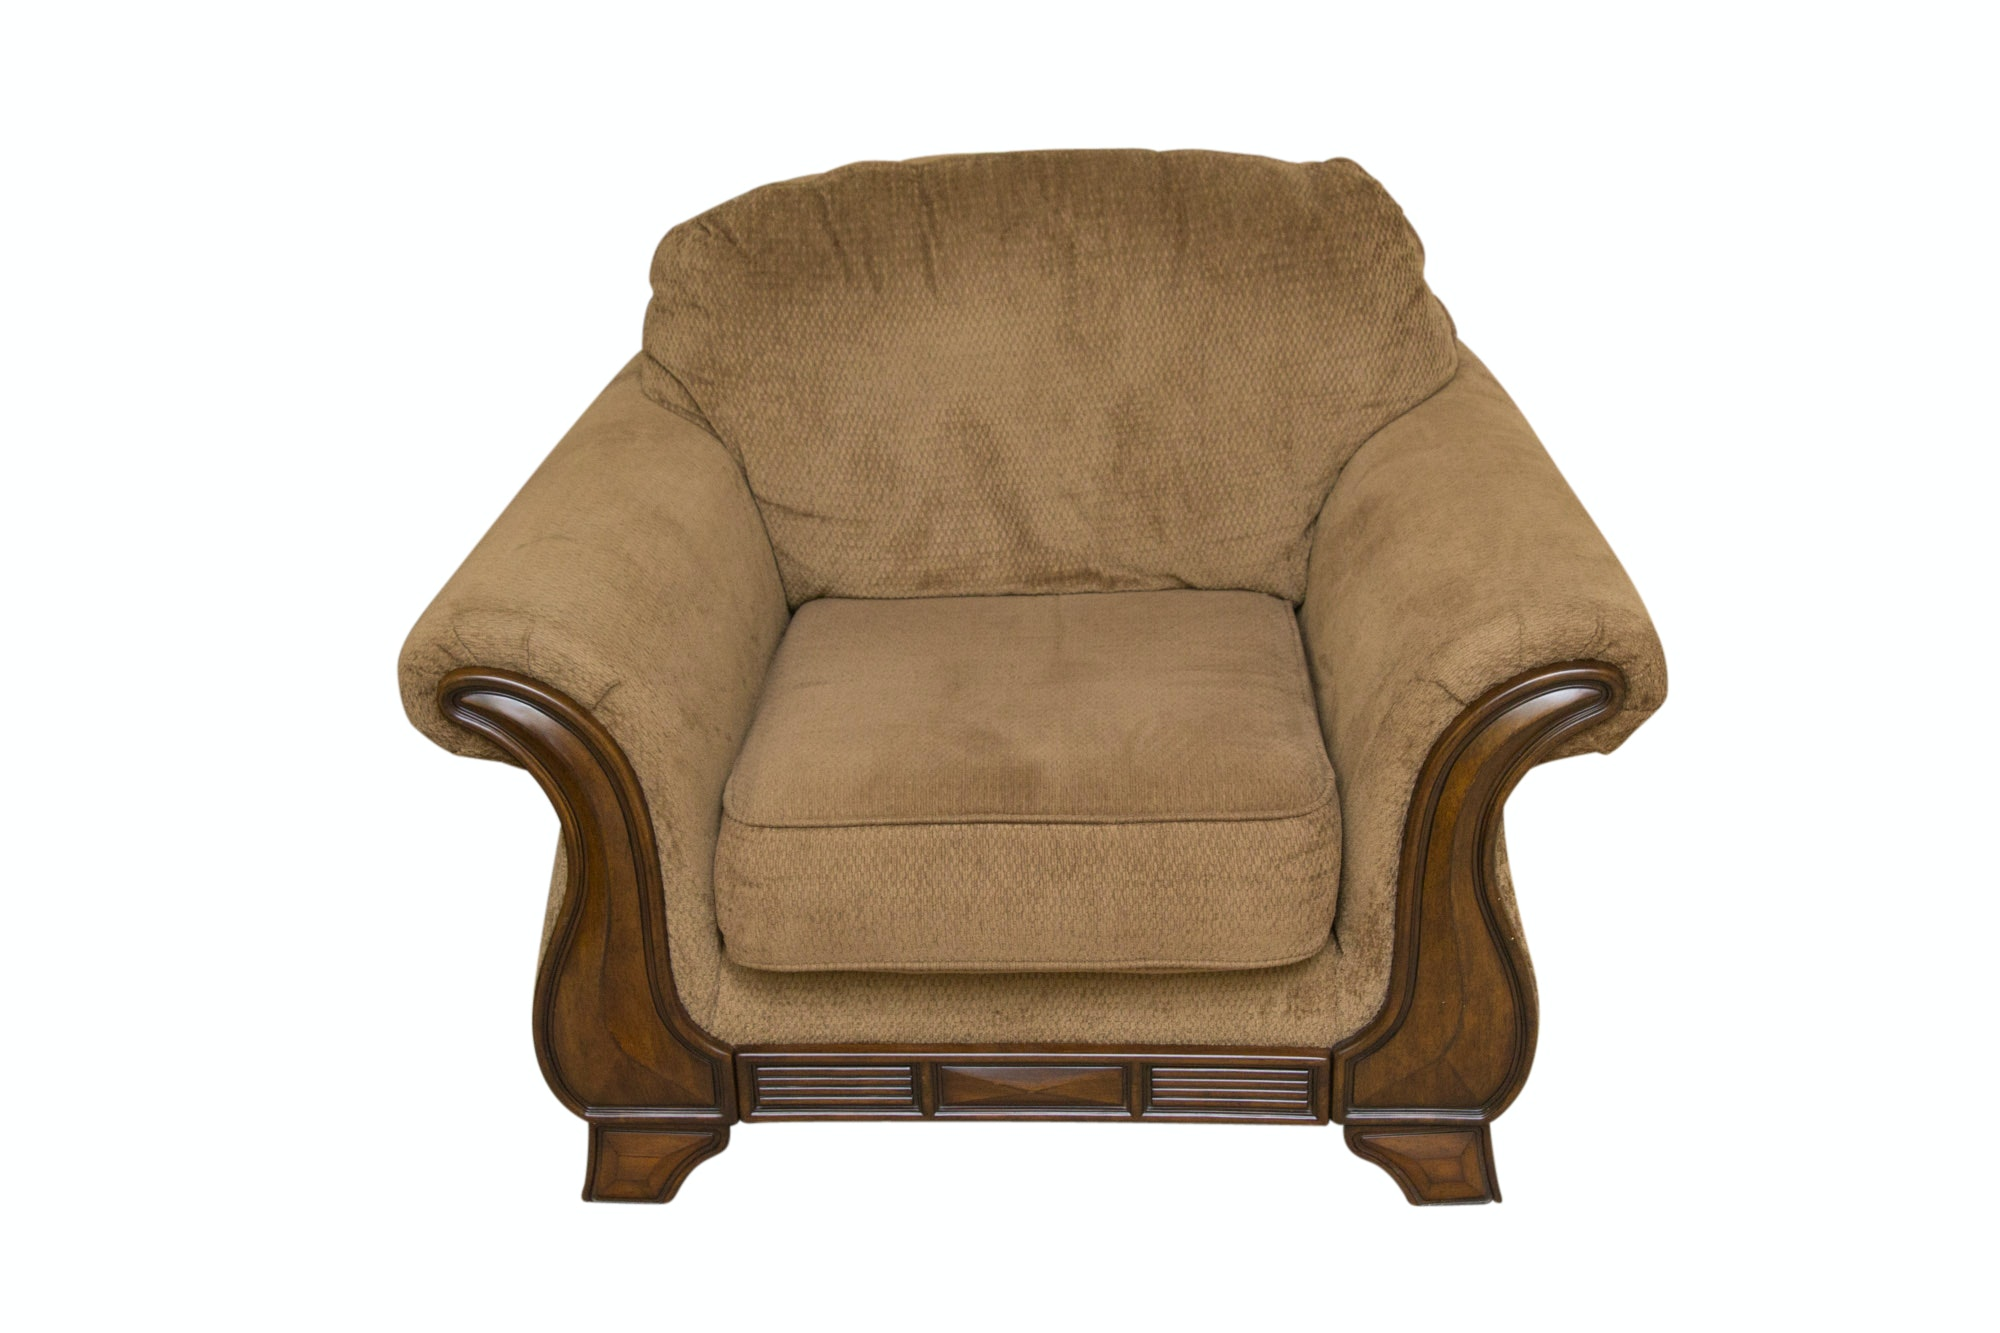 """Lansbury"" Upholstered Chair by Ashley Furniture"